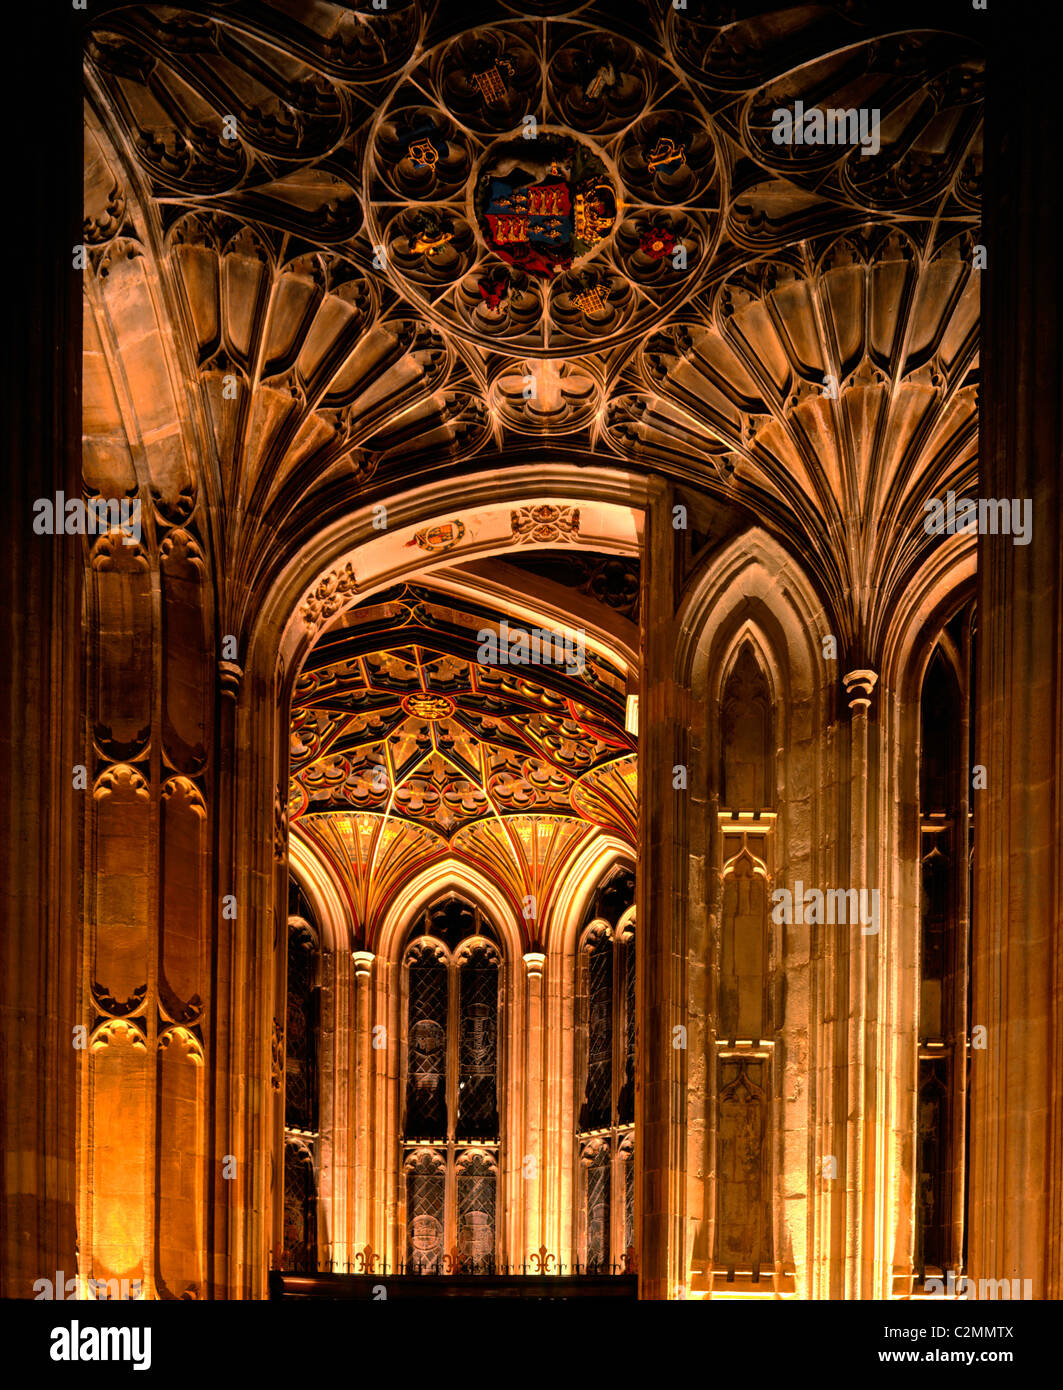 fan vaulted ceiling st georges chapel windsor castle